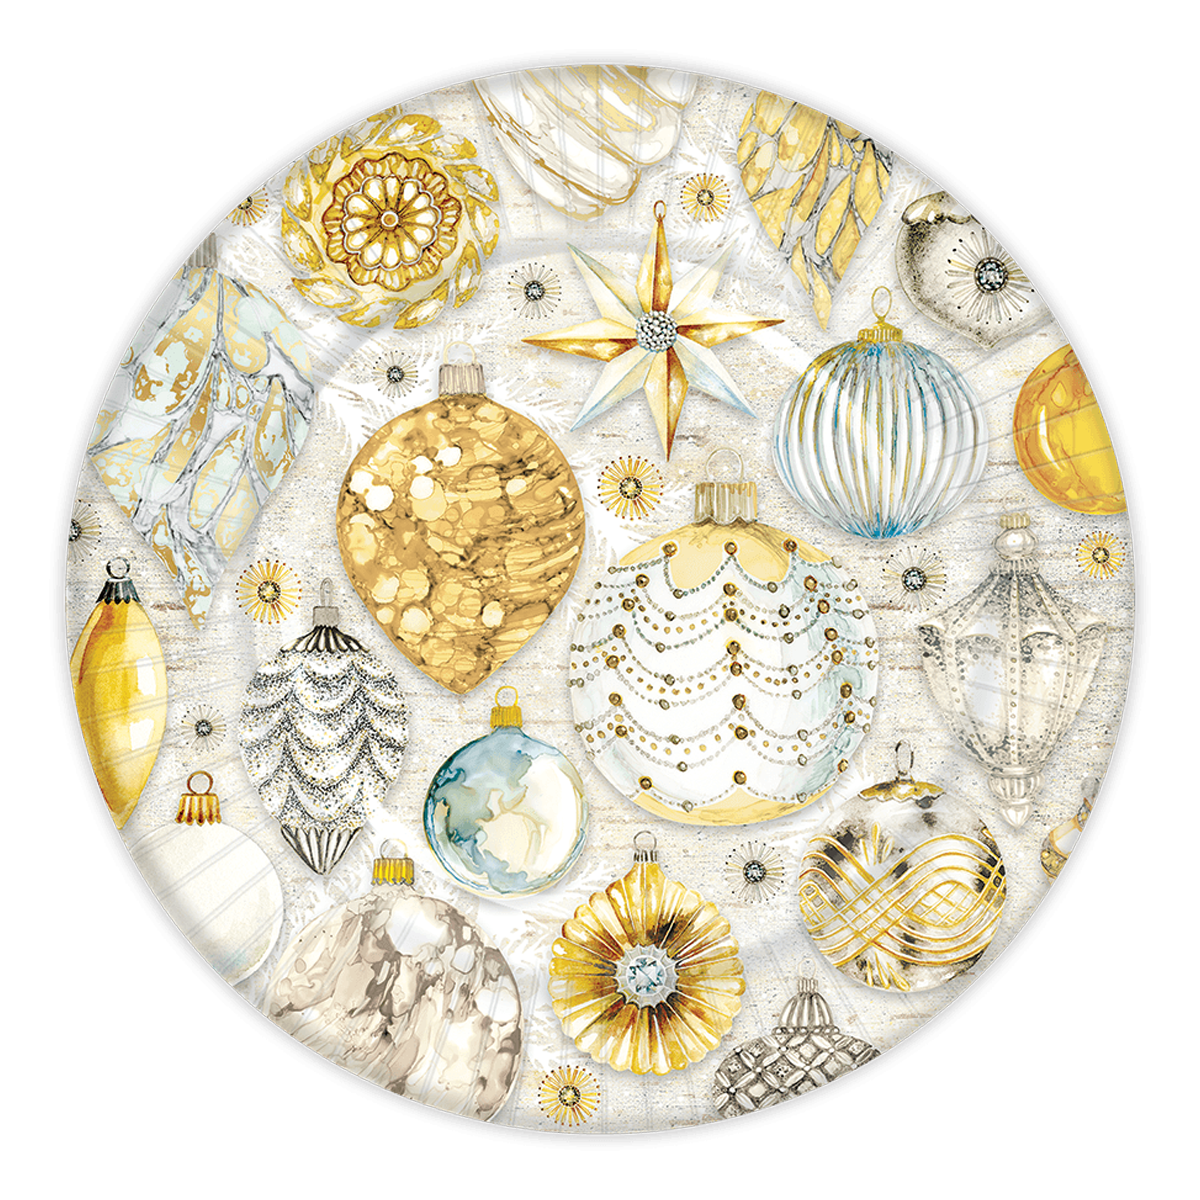 Golden Glow Holiday Dinner Plates  sc 1 st  Punch Studio & Golden Glow Holiday Dinner Plates | Punch Studio